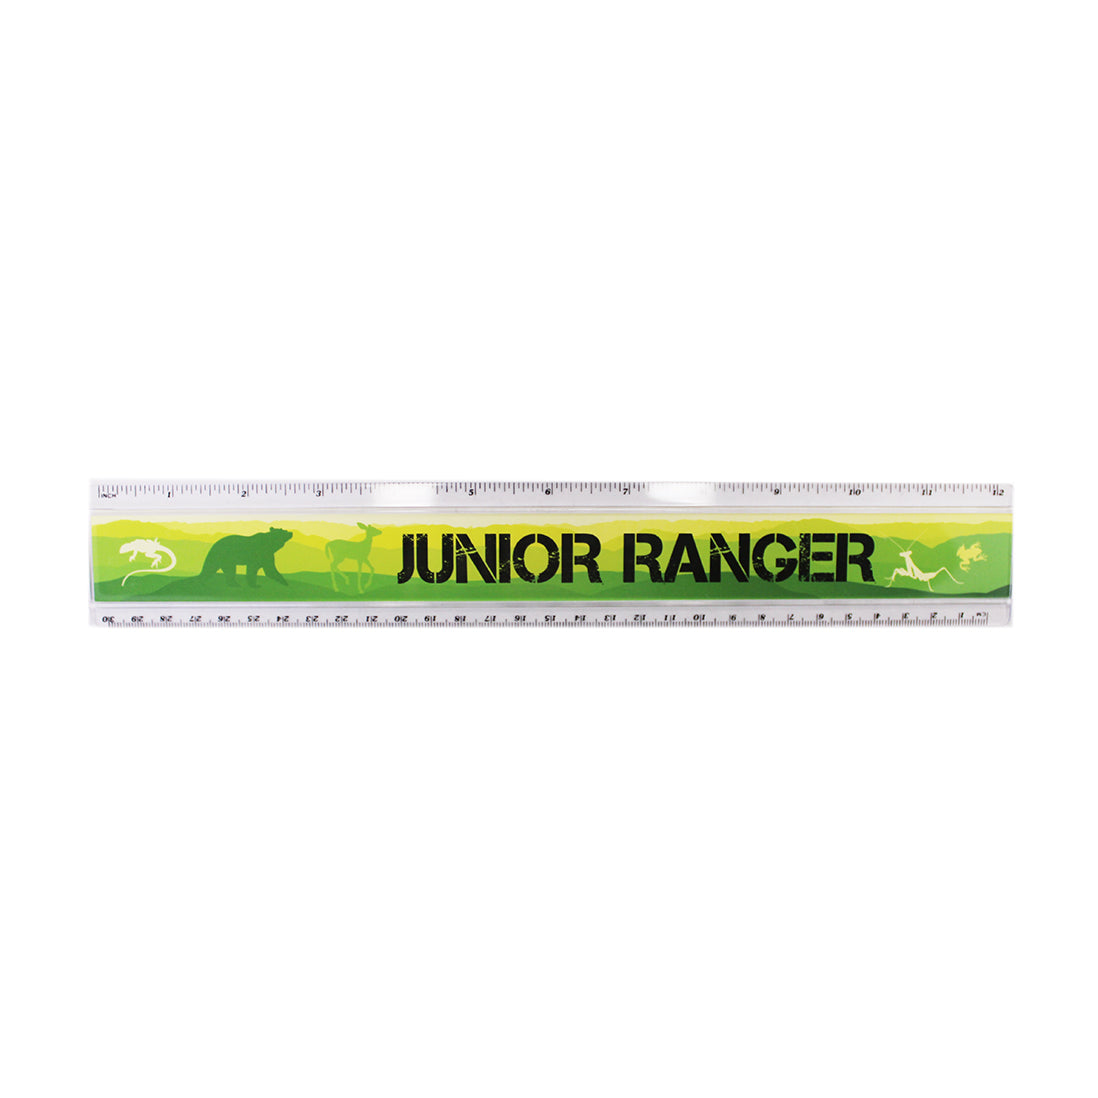 Junior Ranger Ruler, Green